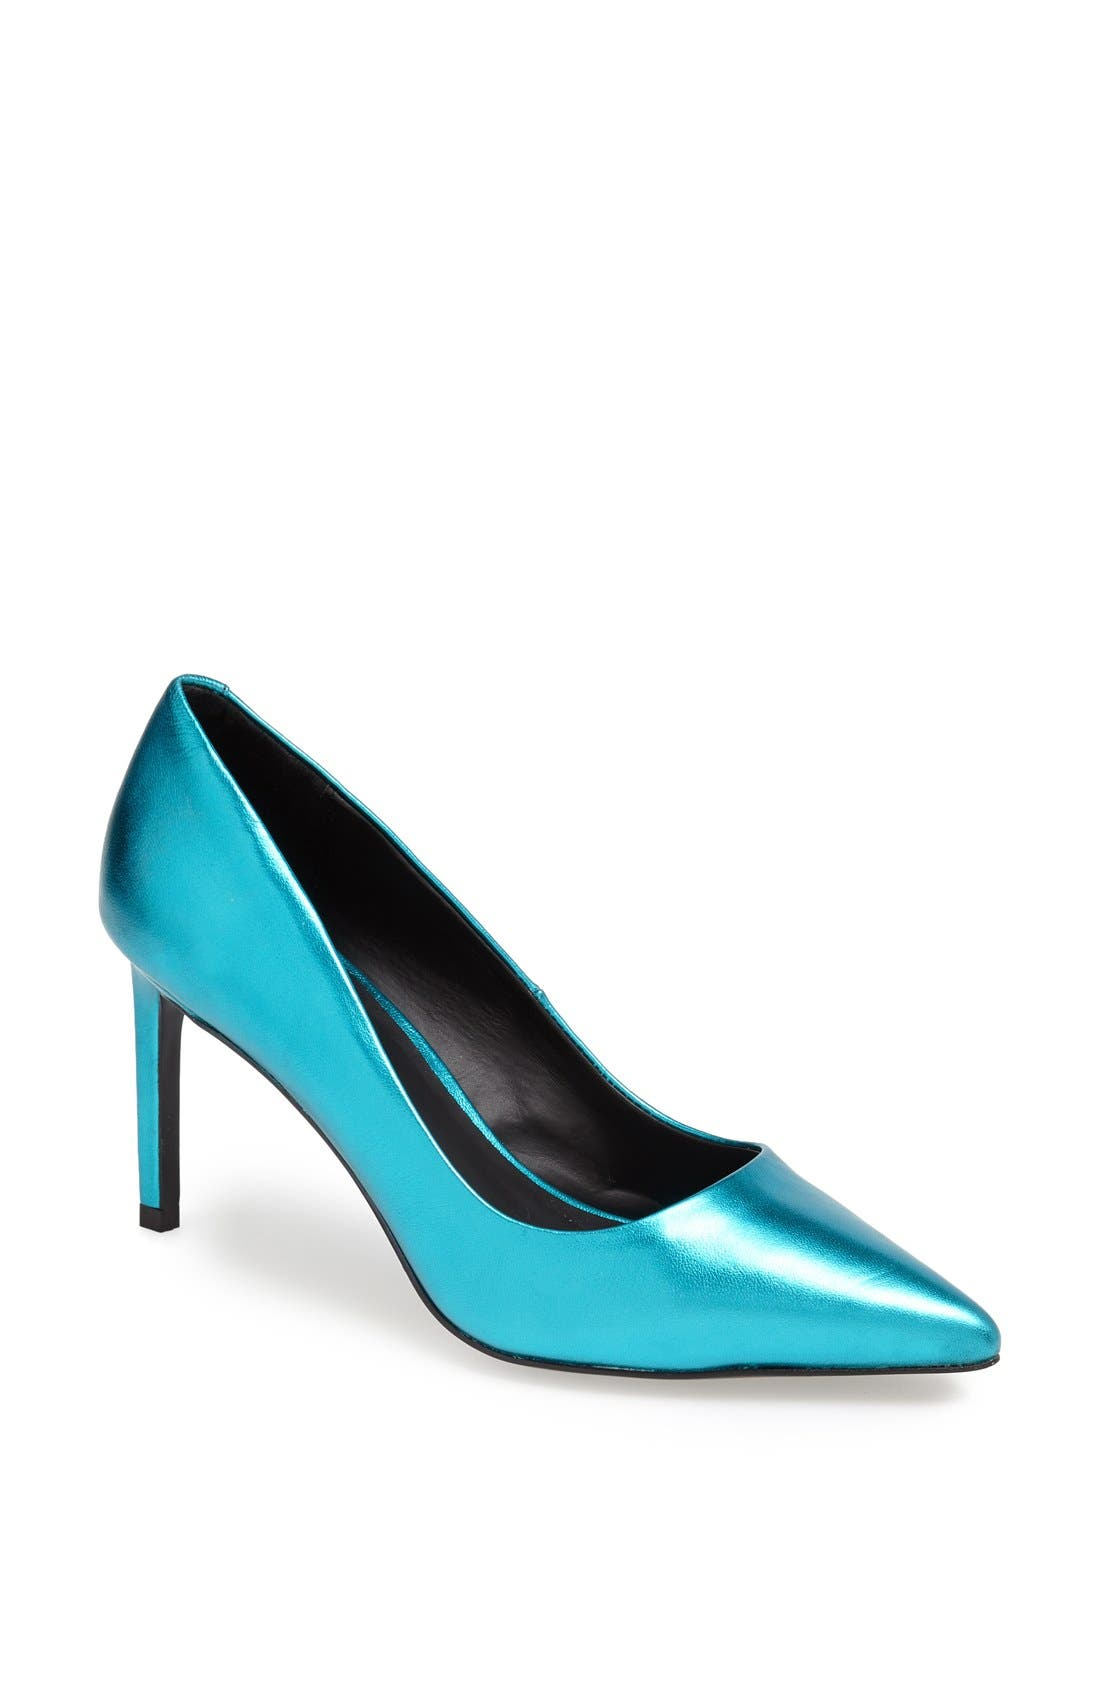 Alternate Image 1 Selected - KG Kurt Geiger 'Bea' Pointy Toe Pump